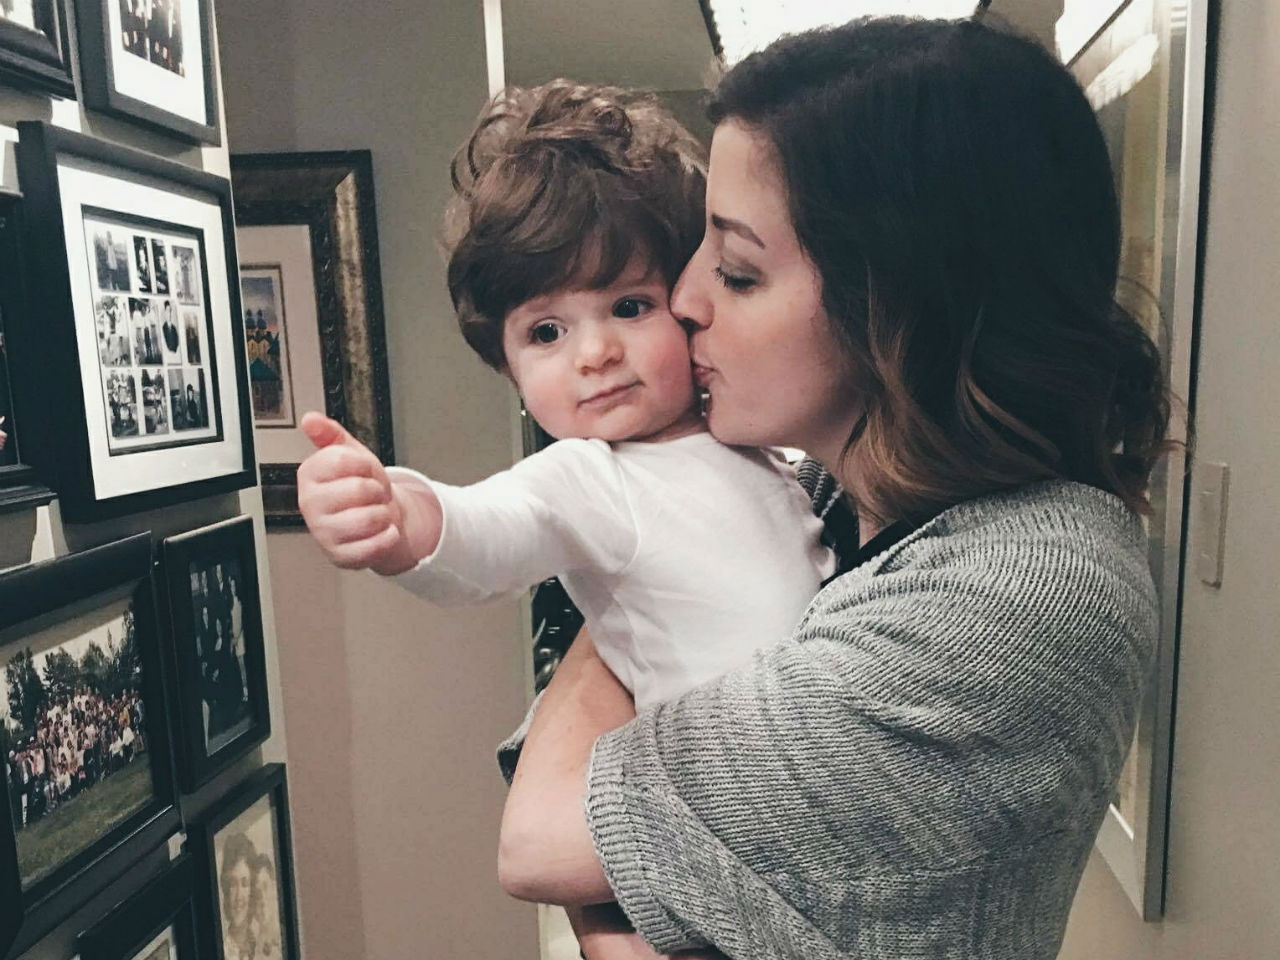 Stephanie Gilman holding her baby and kissing her on the cheek